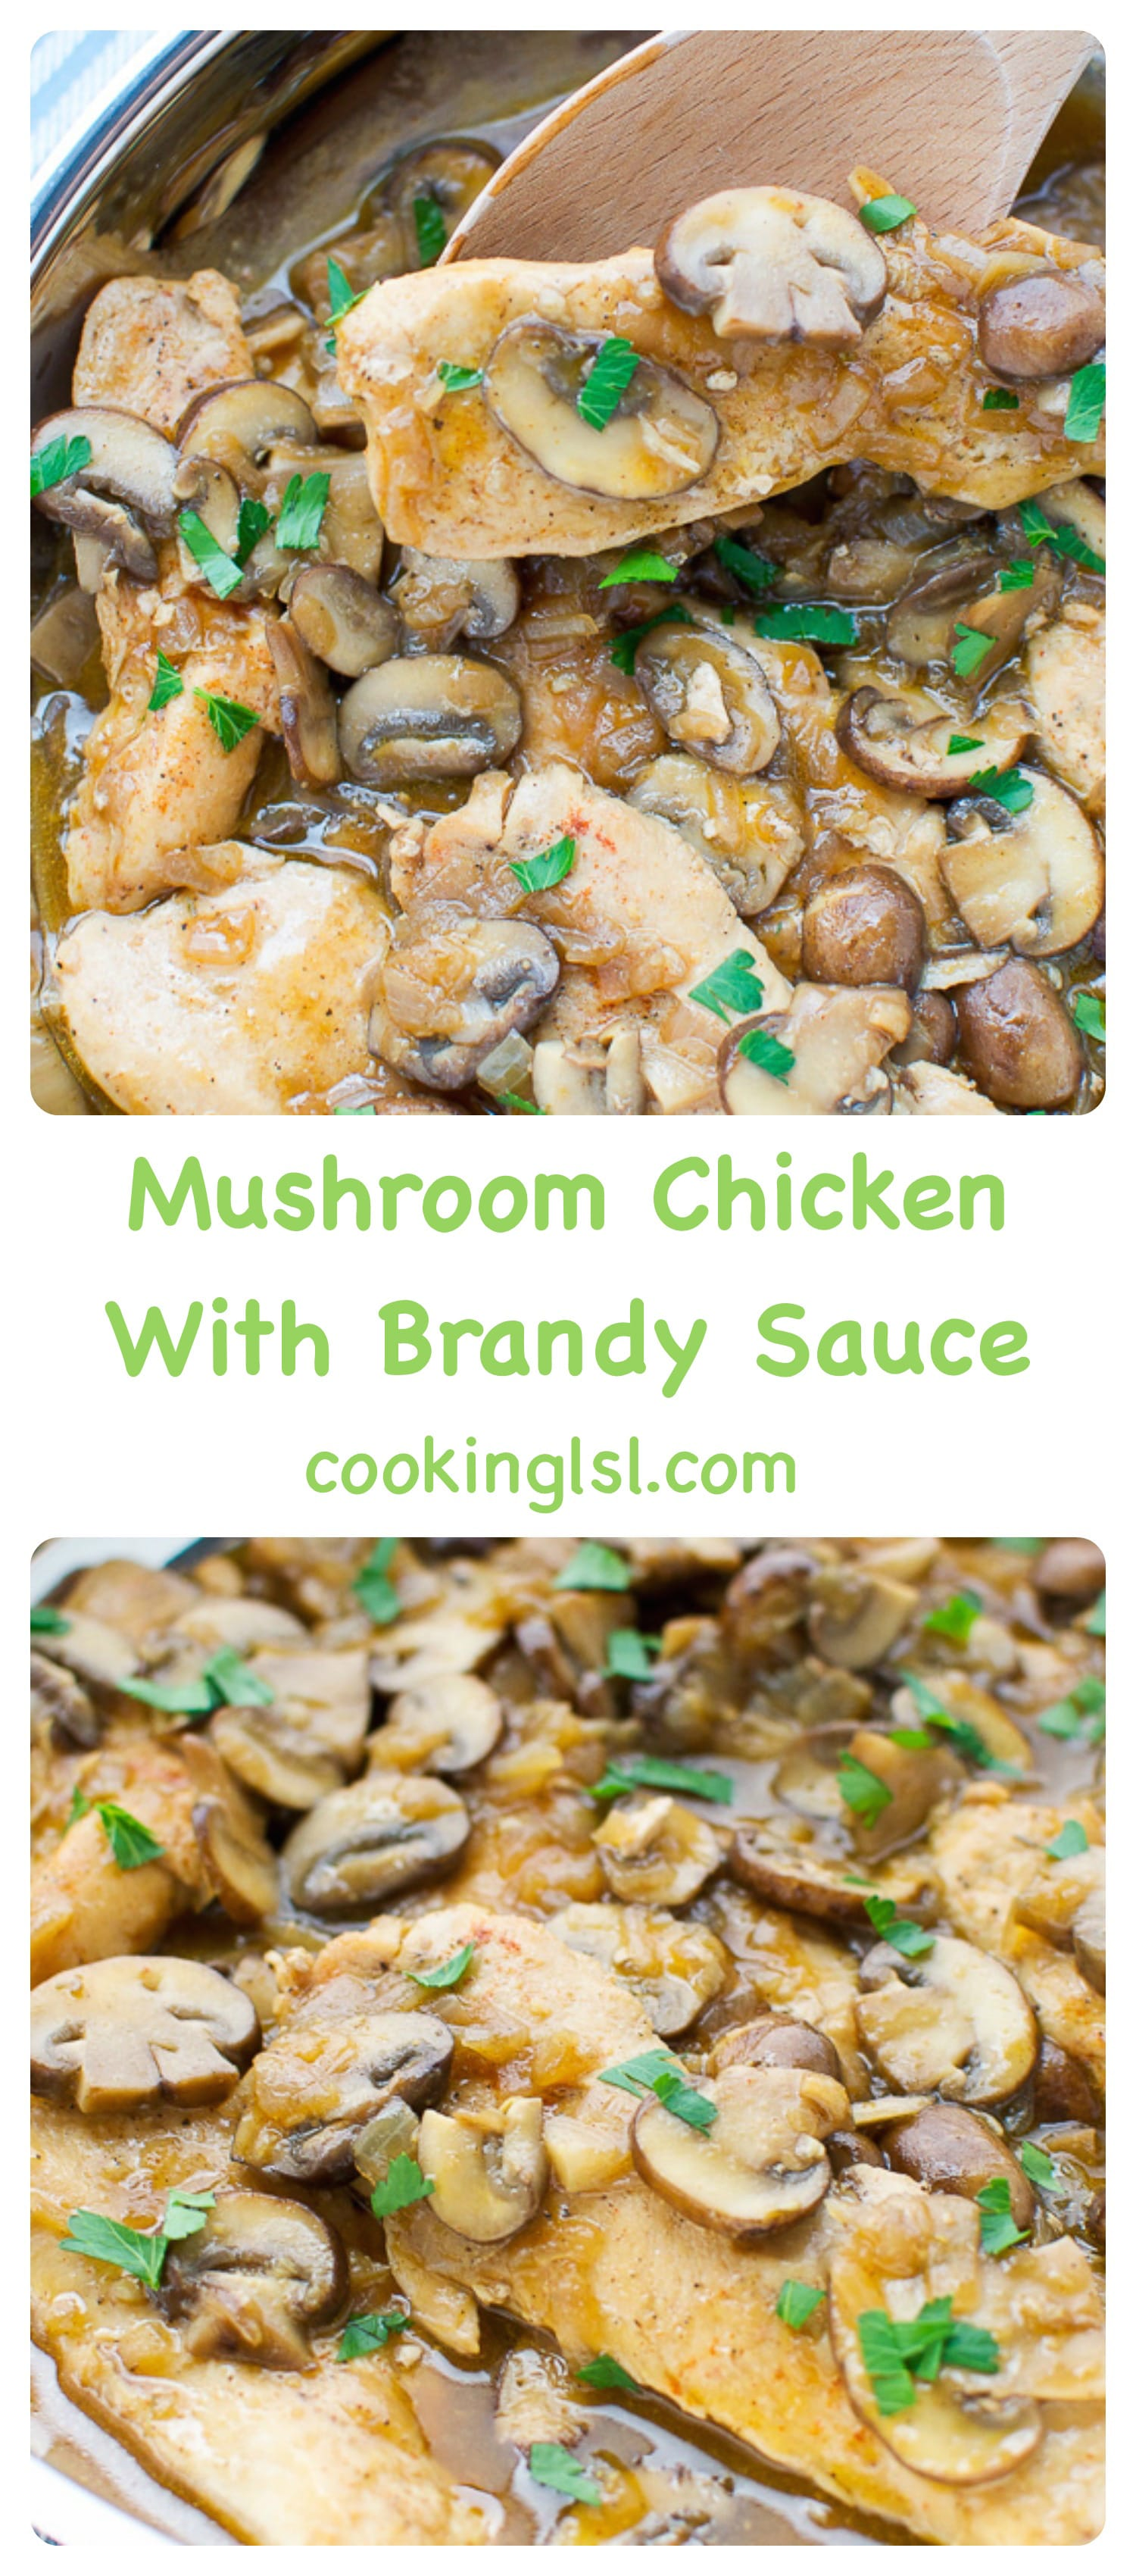 Mushroom Chicken With Brandy Sauce Recipe